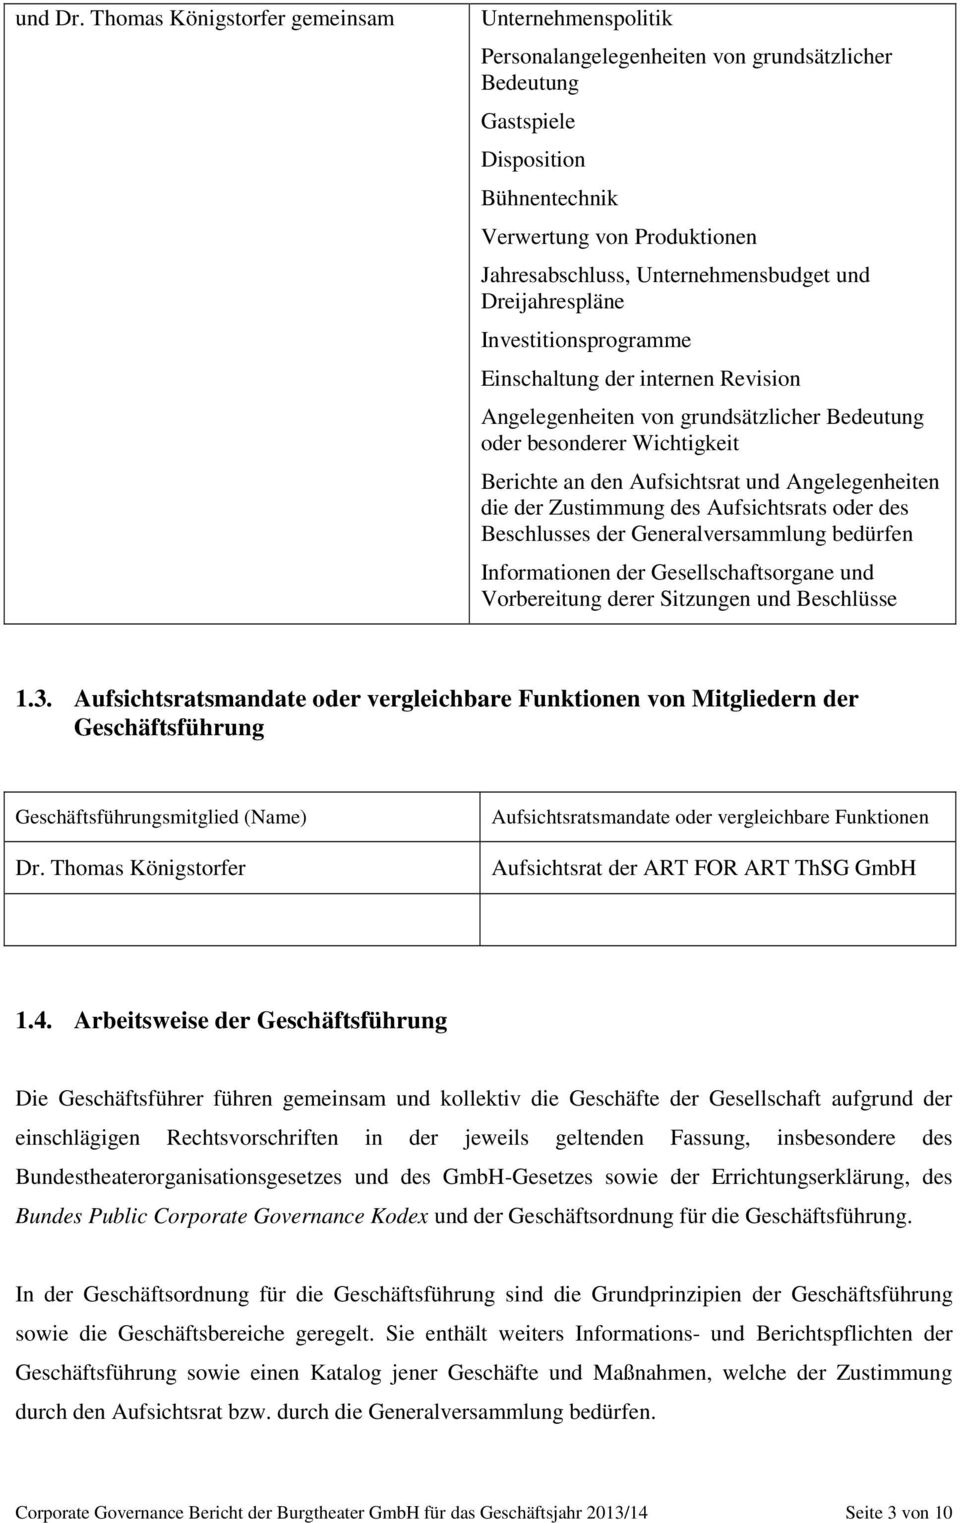 Großartig Corporate Satzung Vorlage Fotos - Entry Level Resume ...